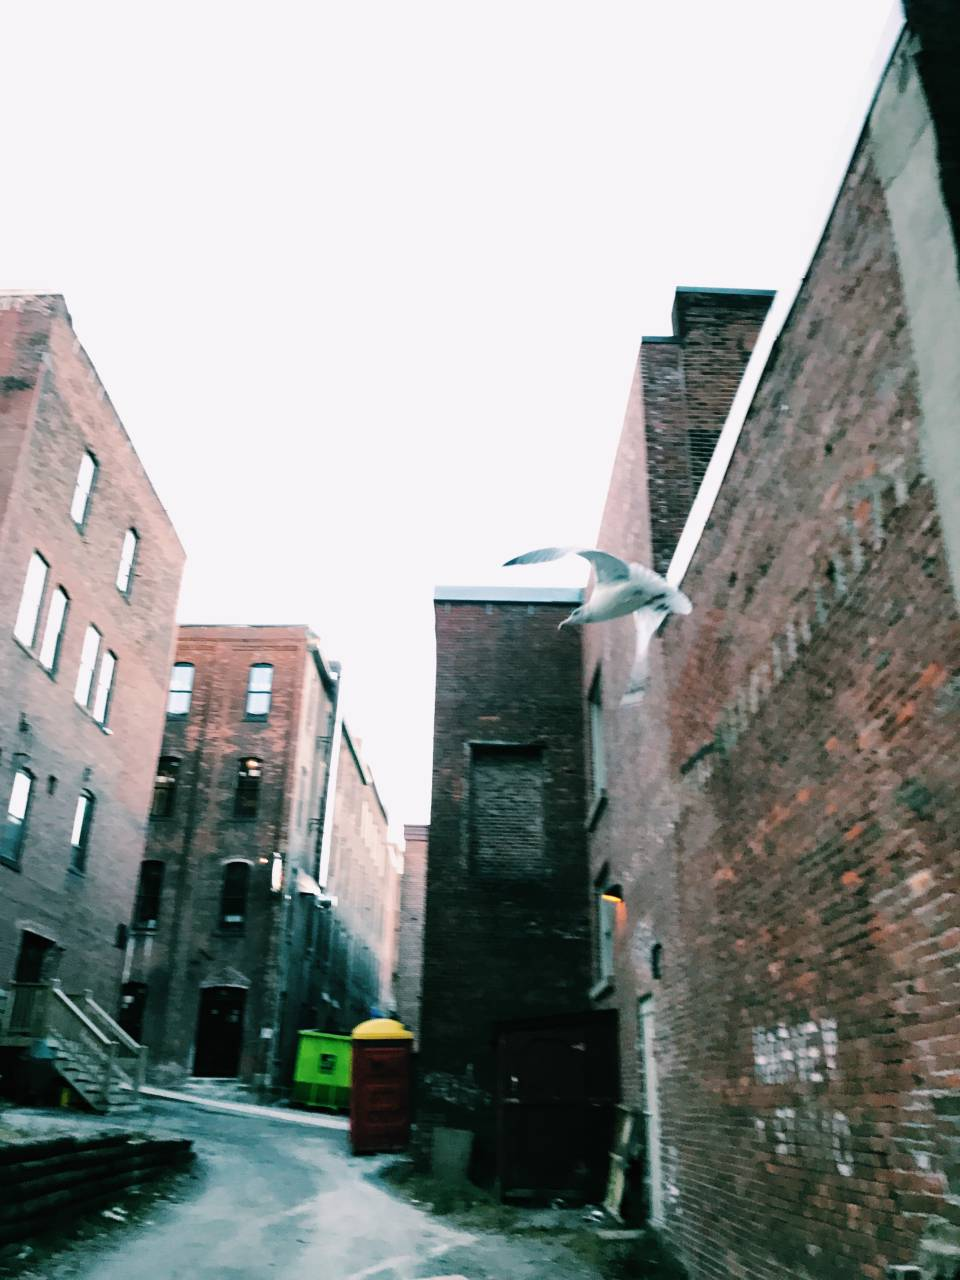 A photo of A seagull flying in an alleyway